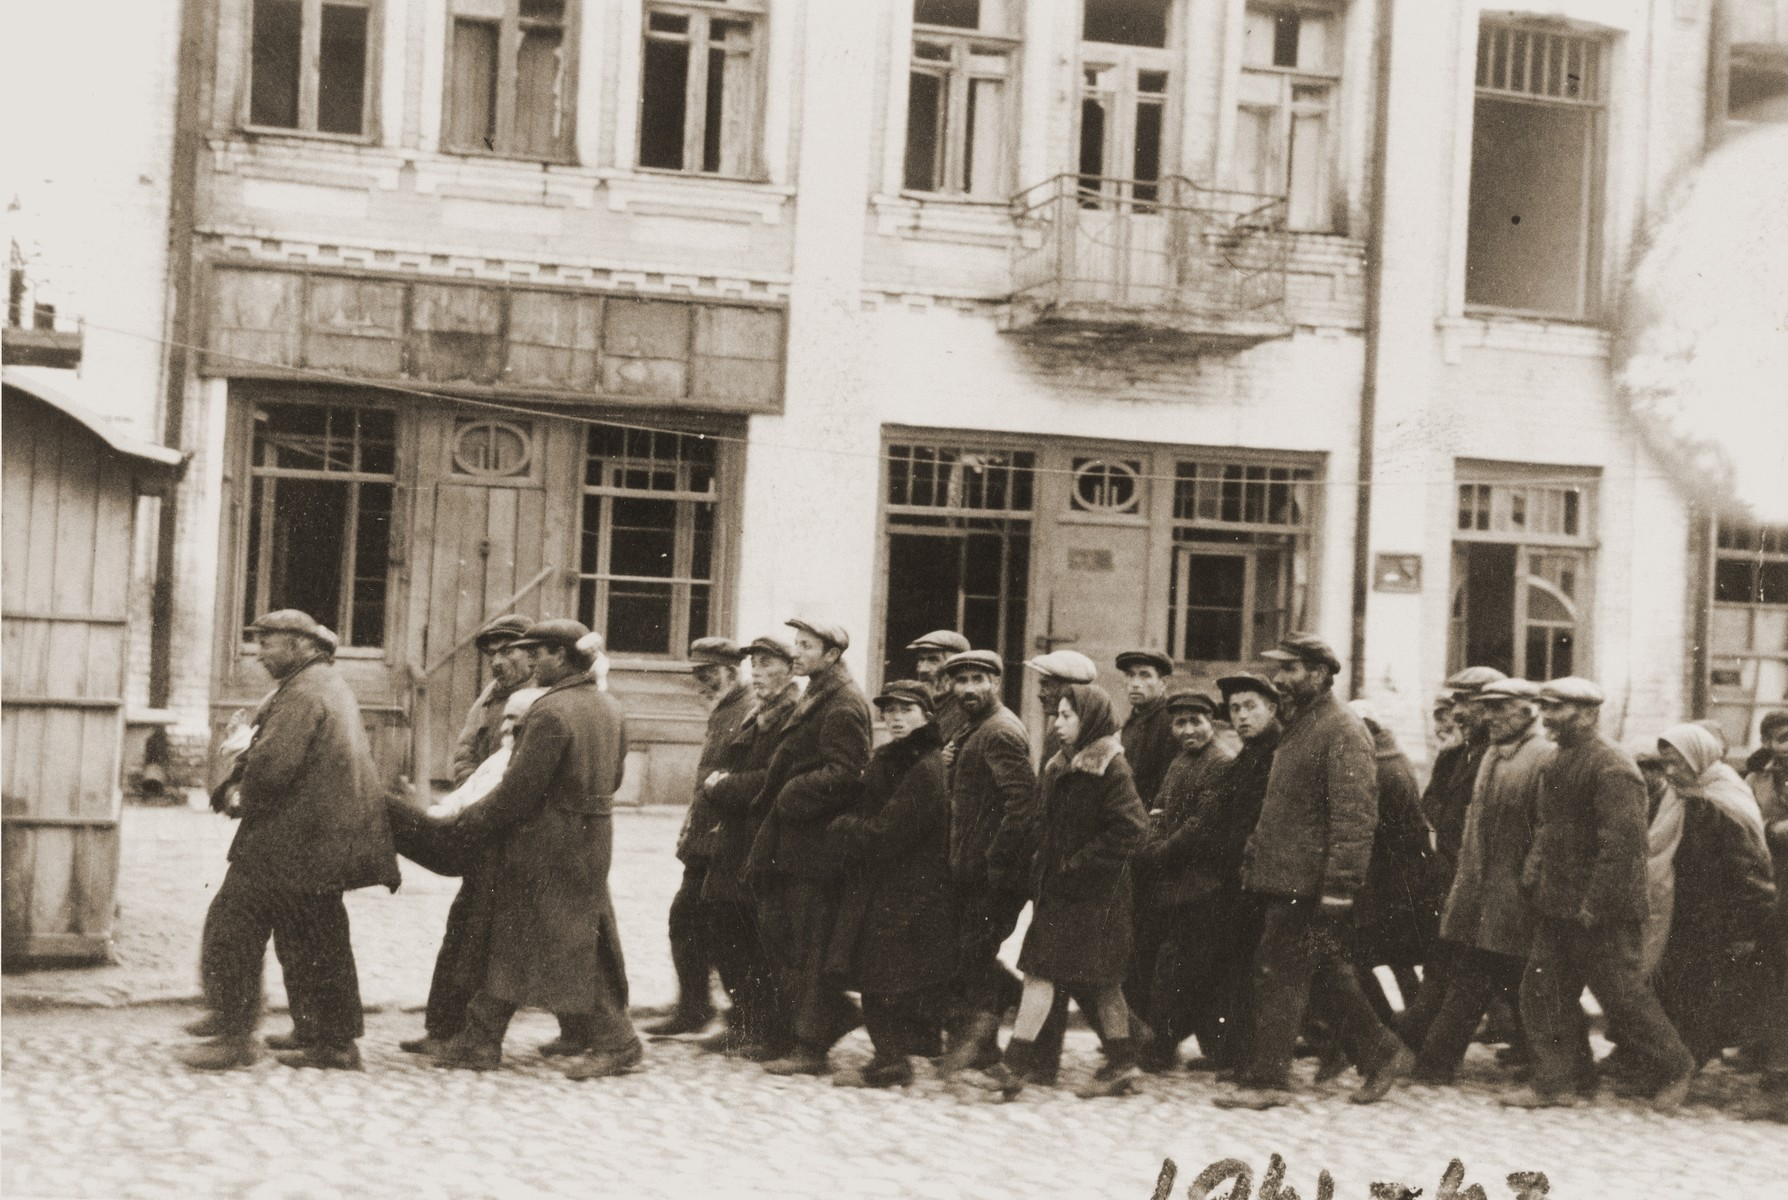 Jewish deportees march through the streets of Kamenets-Podolsk to an execution site outside of the city.